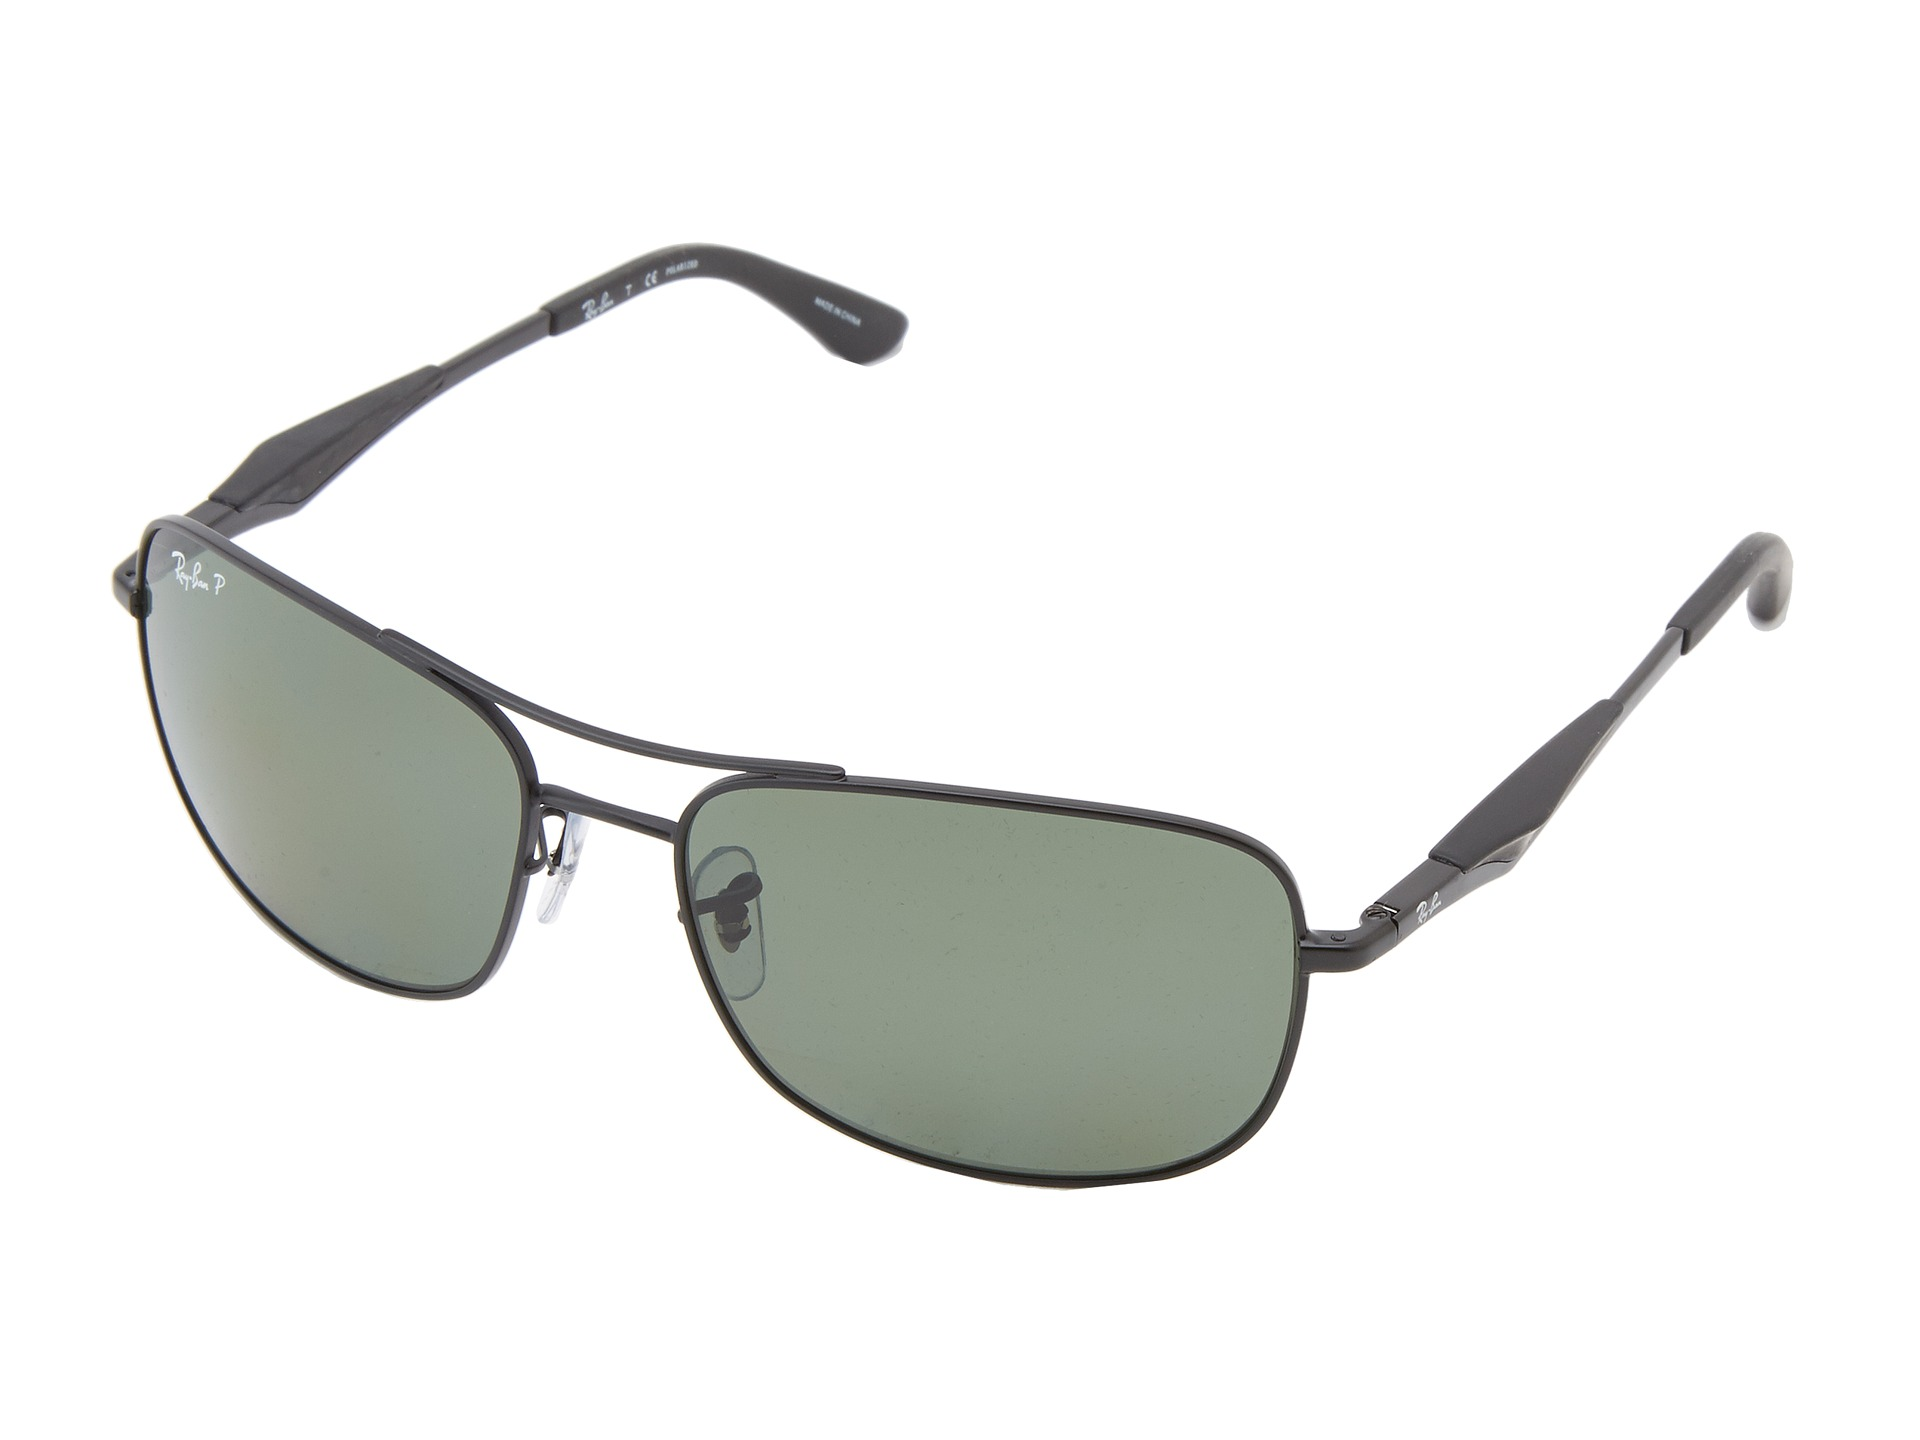 ray ban polarized 3025 62mm veins treatment. Black Bedroom Furniture Sets. Home Design Ideas